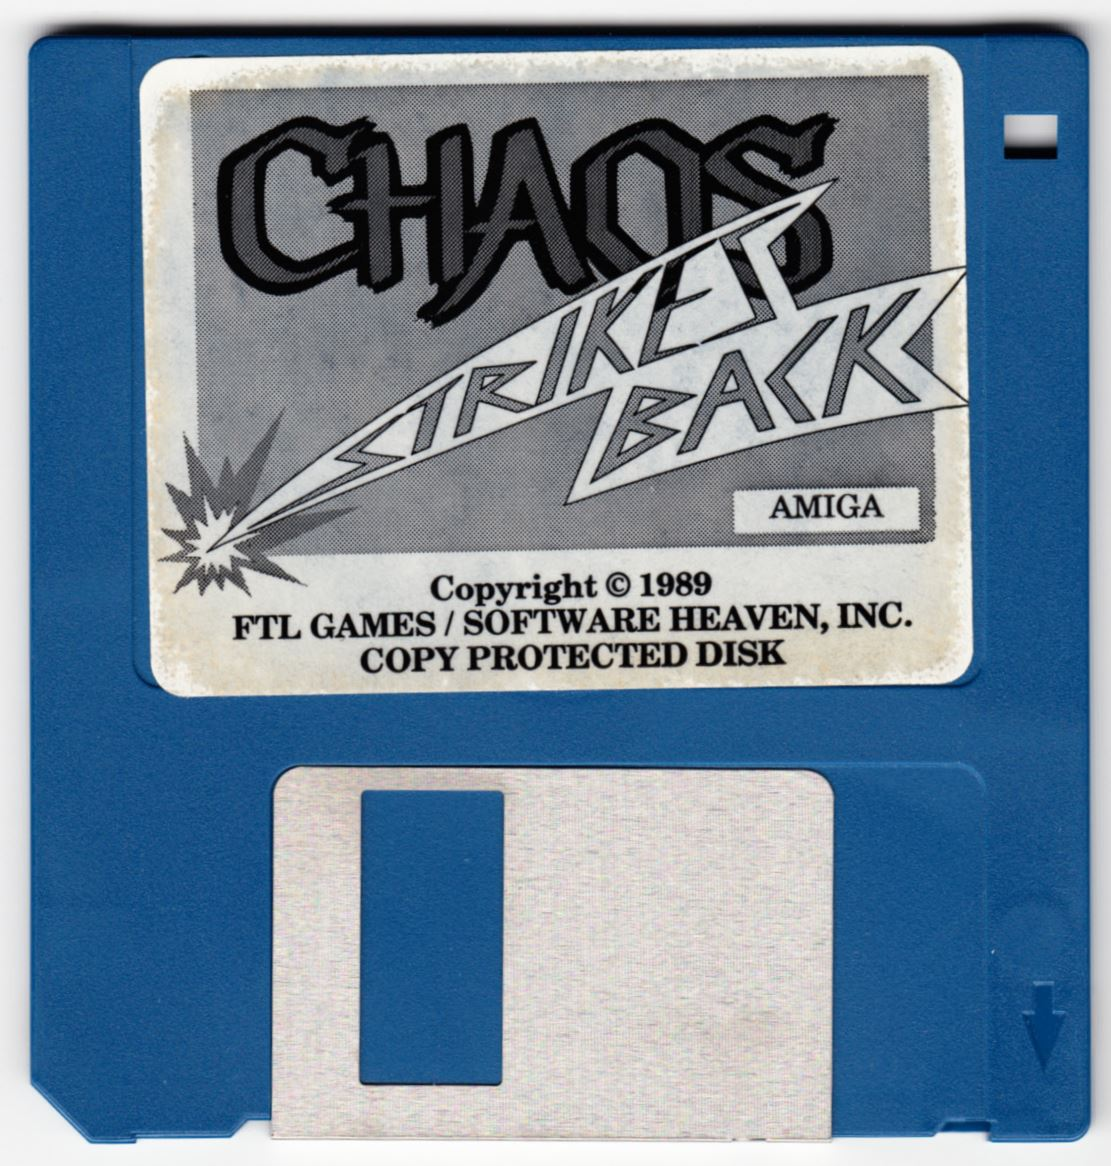 Game - Chaos Strikes Back - UK - Amiga - Game Disk - Front - Scan